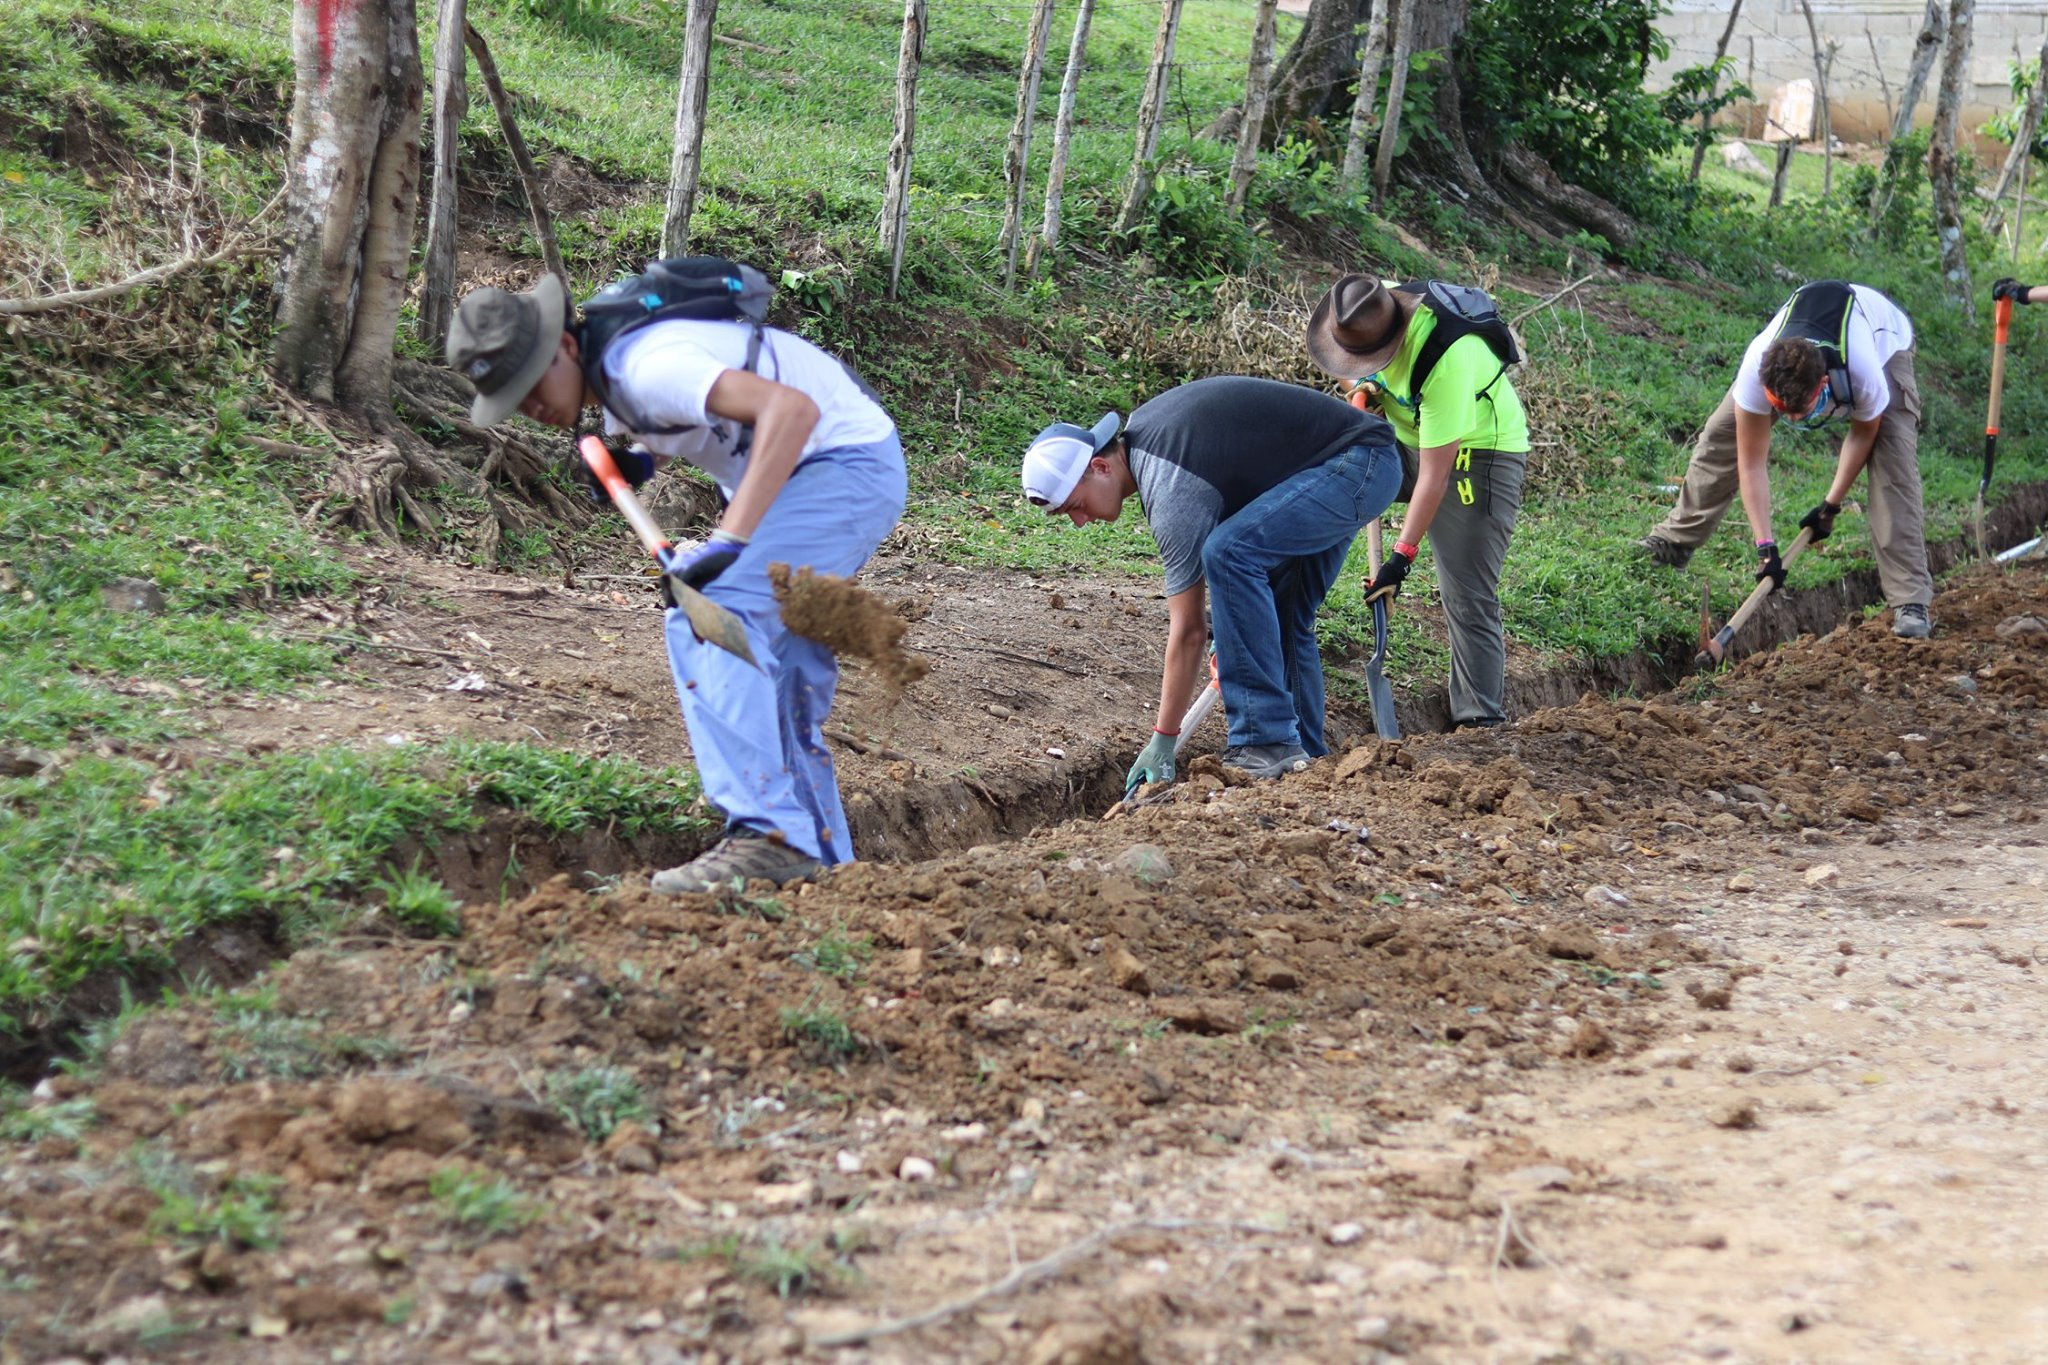 blue-missions-volunteers-digging-trenches-for-water-min.jpg